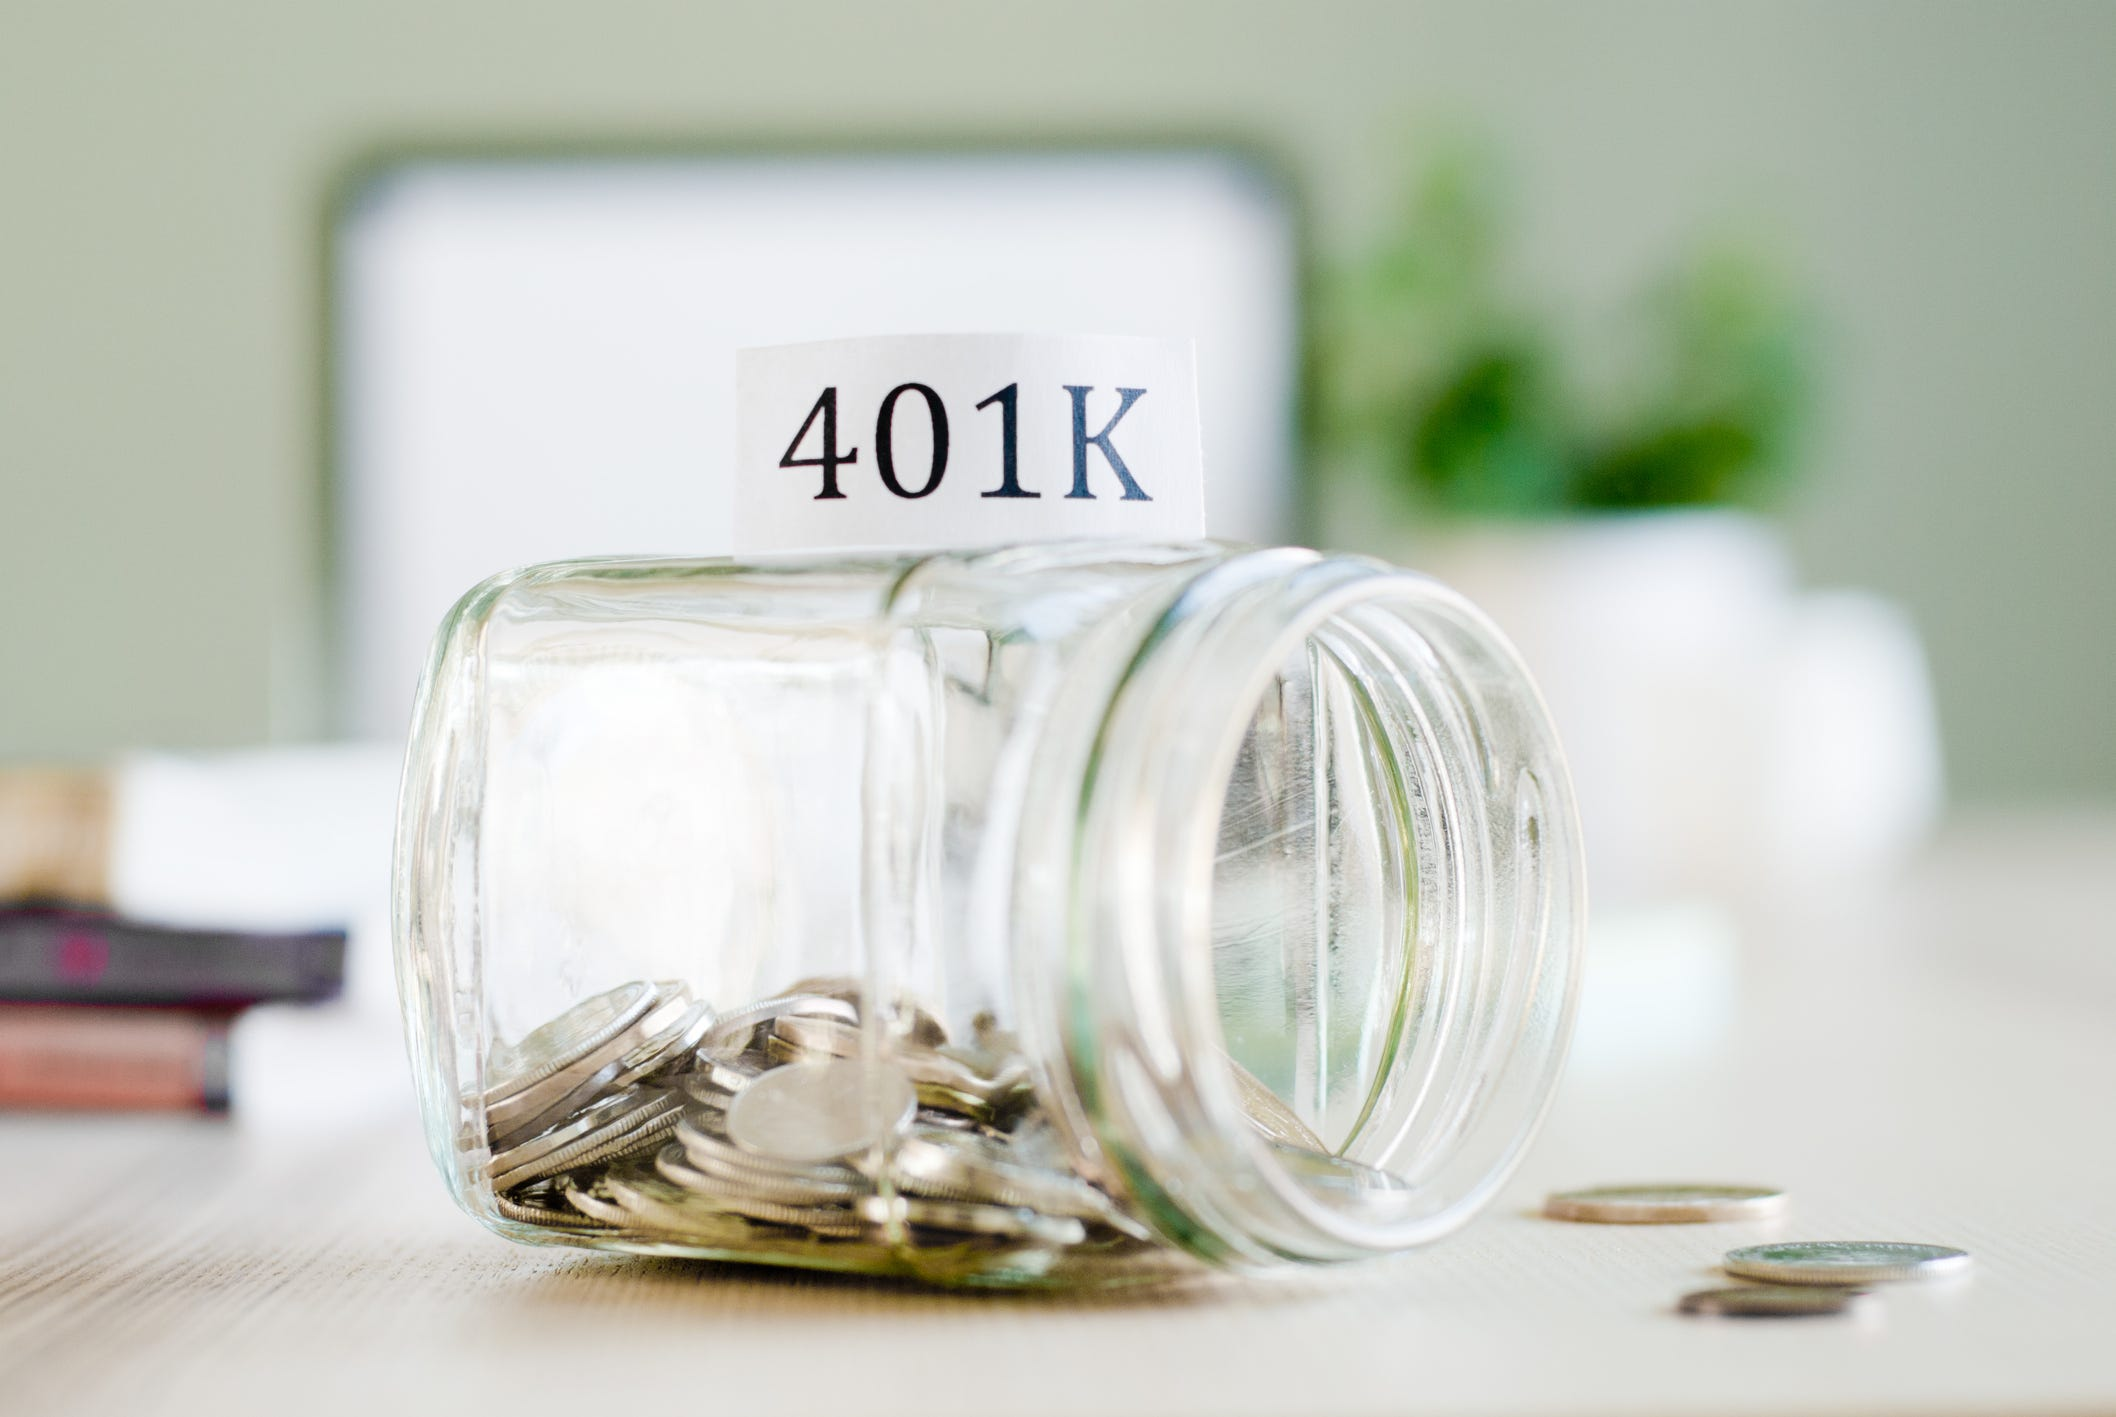 Compare your 401k, contribution rates, fees